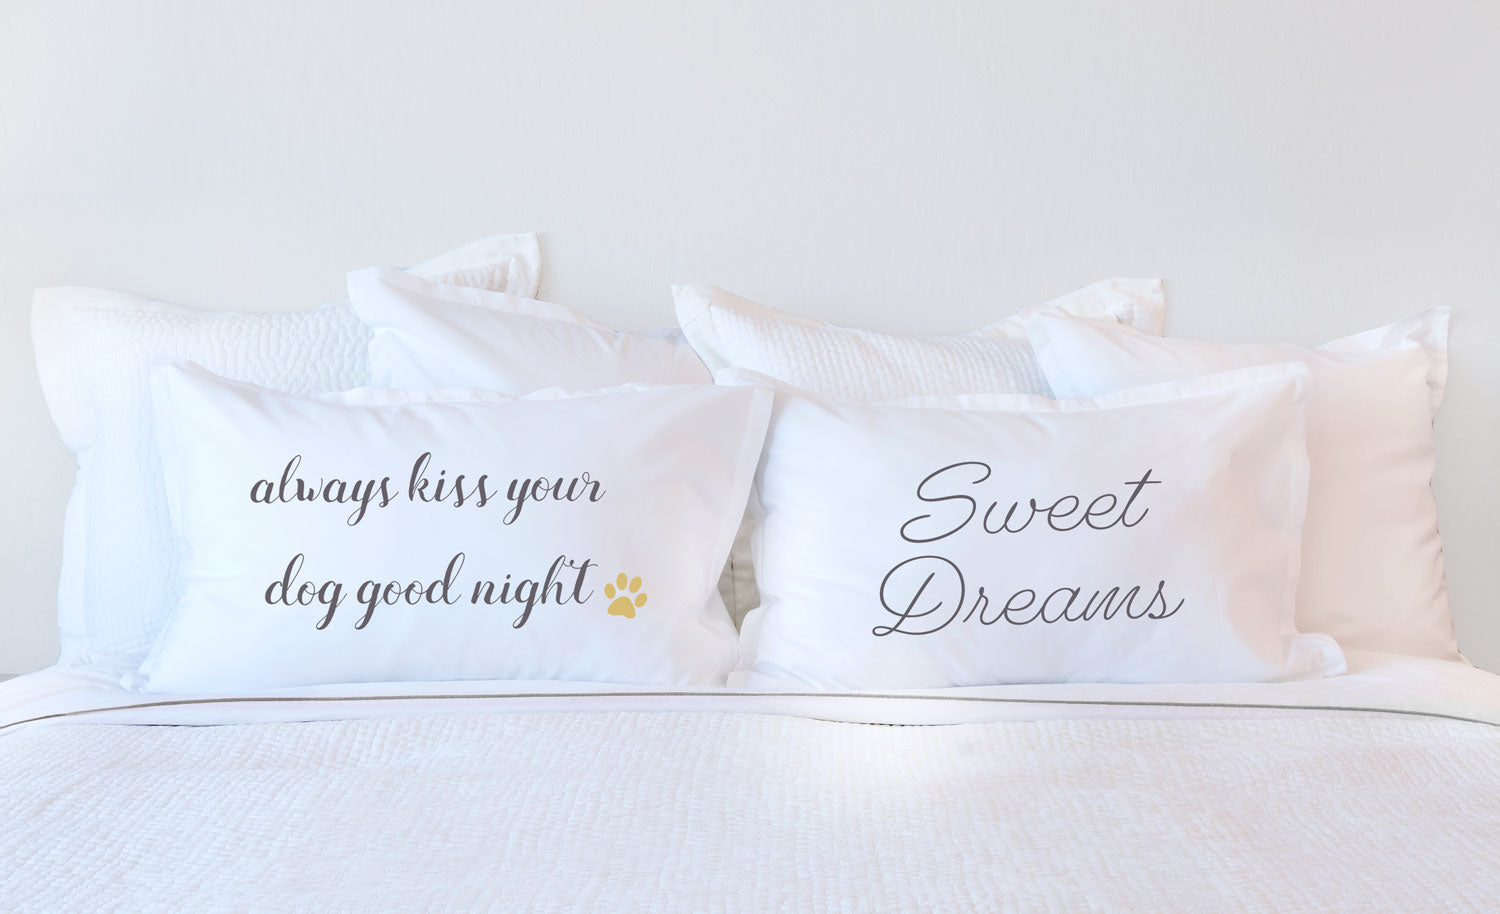 Always Kiss Your Dog Goodnight - Inspirational Quotes Pillowcase Collection-Di Lewis